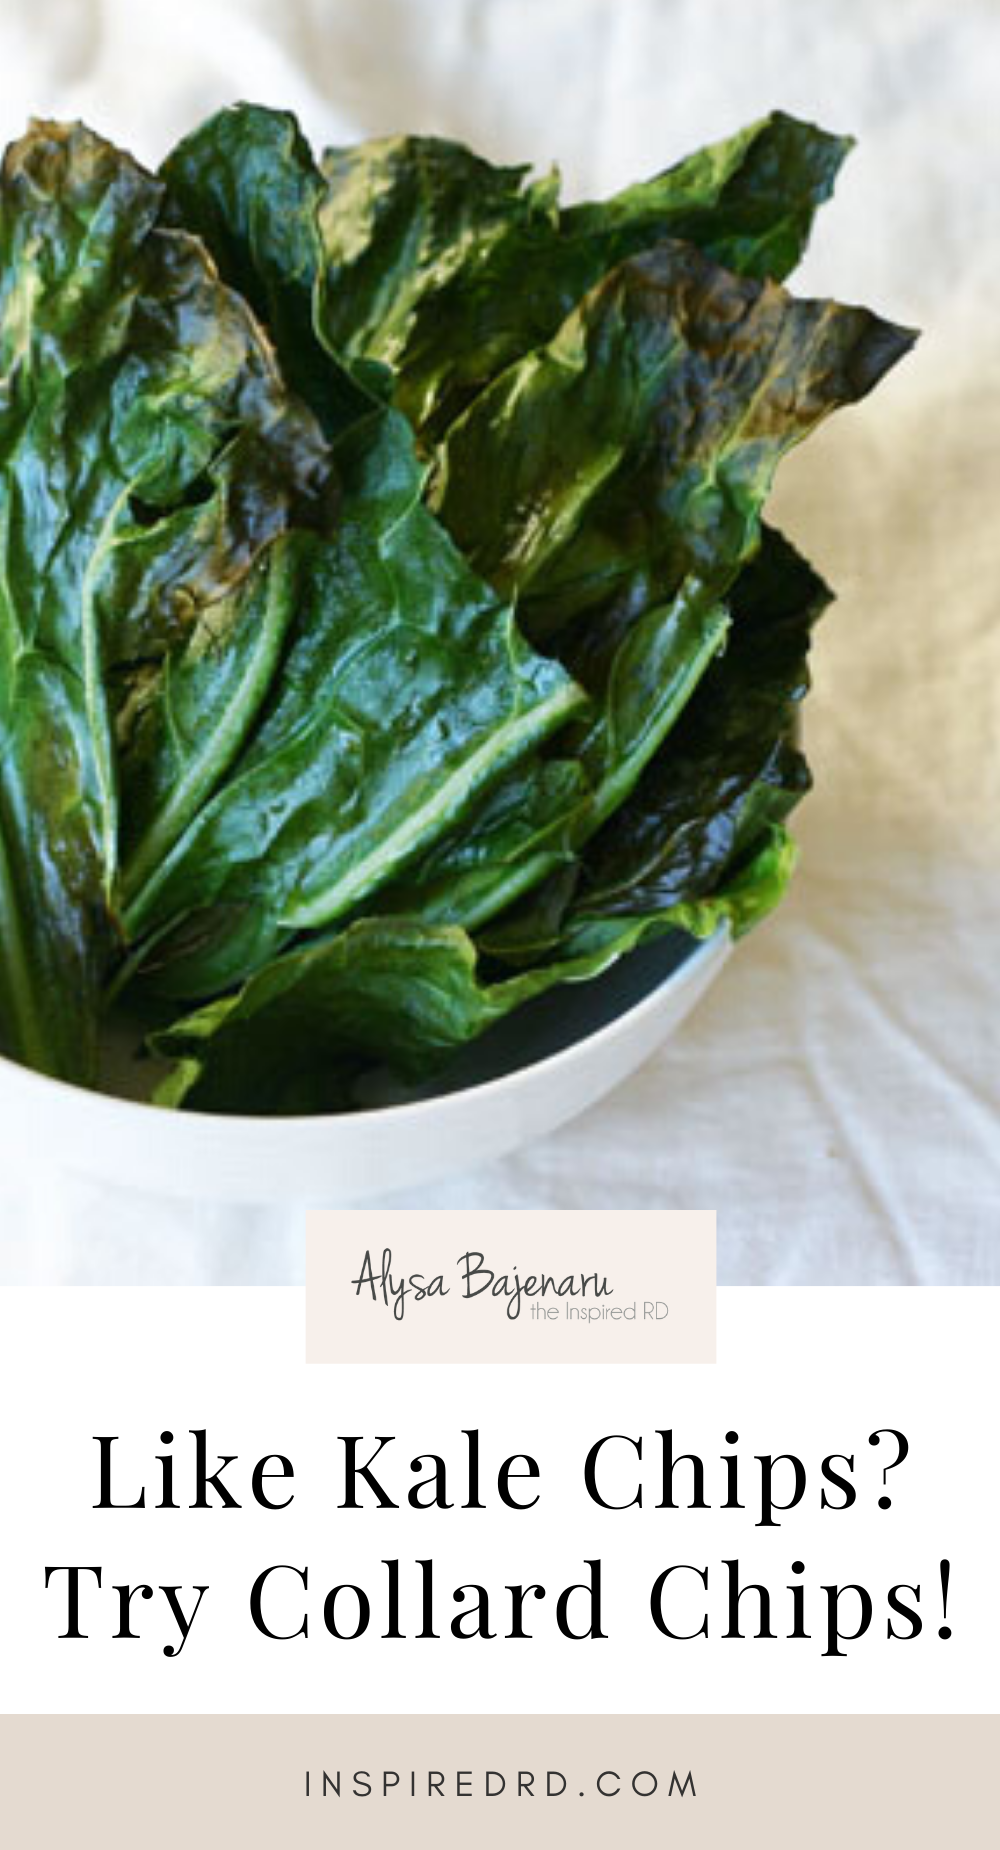 Like Kale Chips? Try Collard Chips!